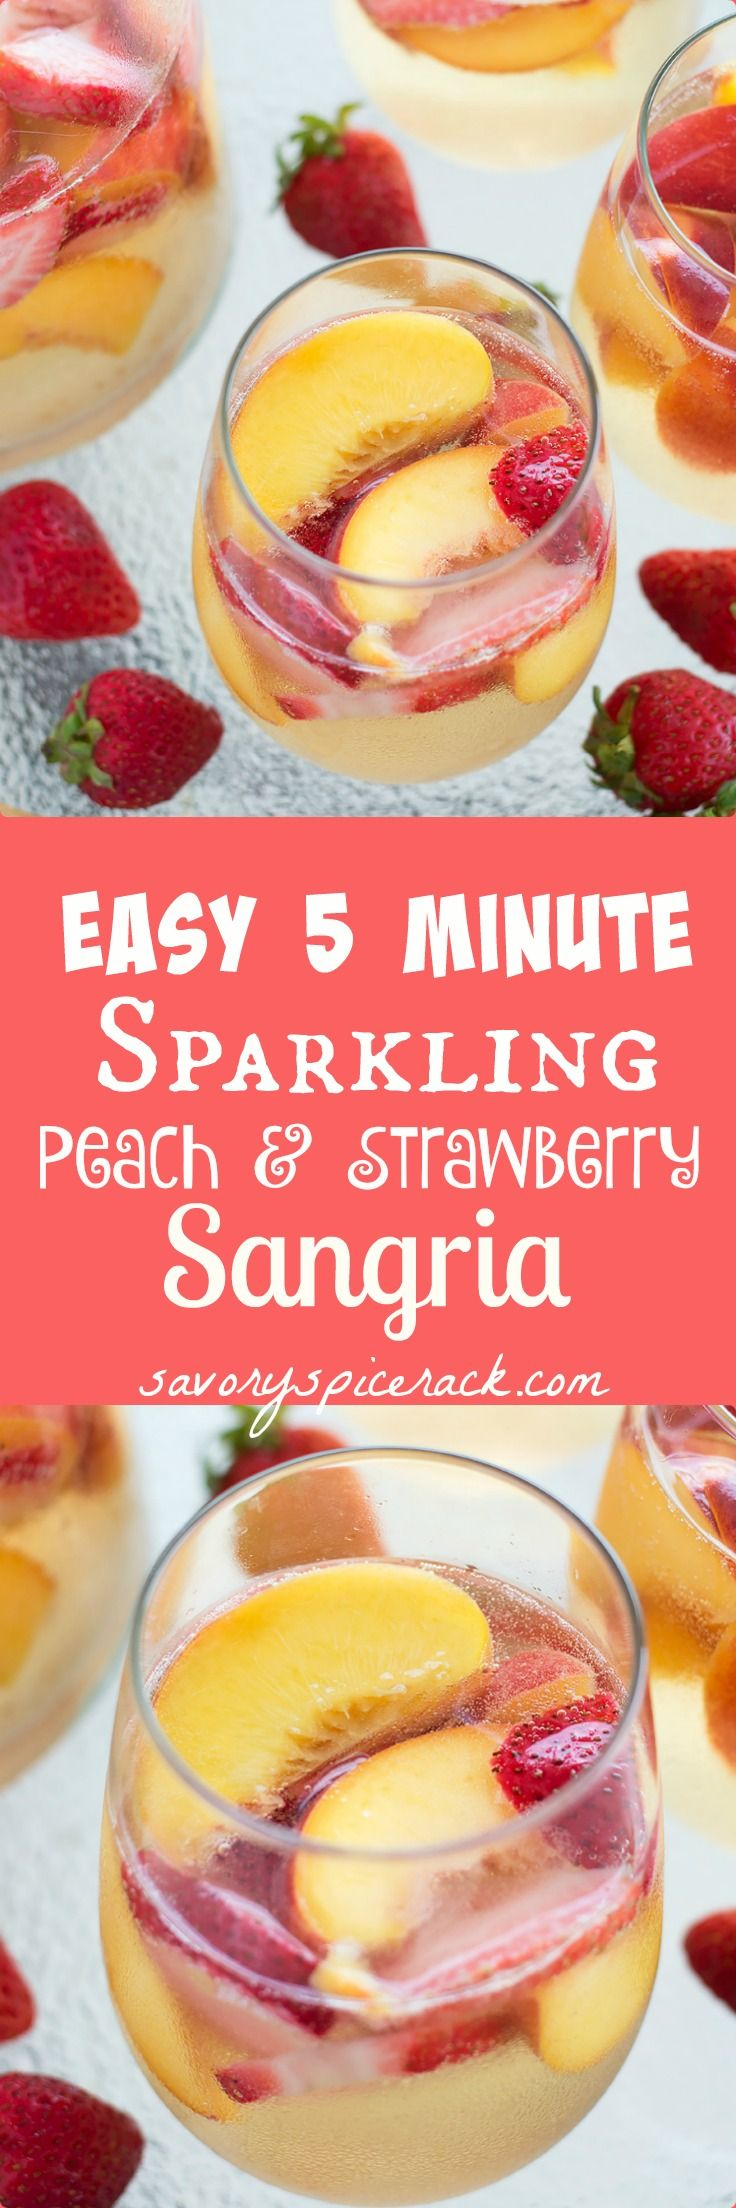 Sparkling Peach and Strawberry Sangria - This easy Sparkling Peach and Strawberry Sangria was a hit at our barbecue this weekend!